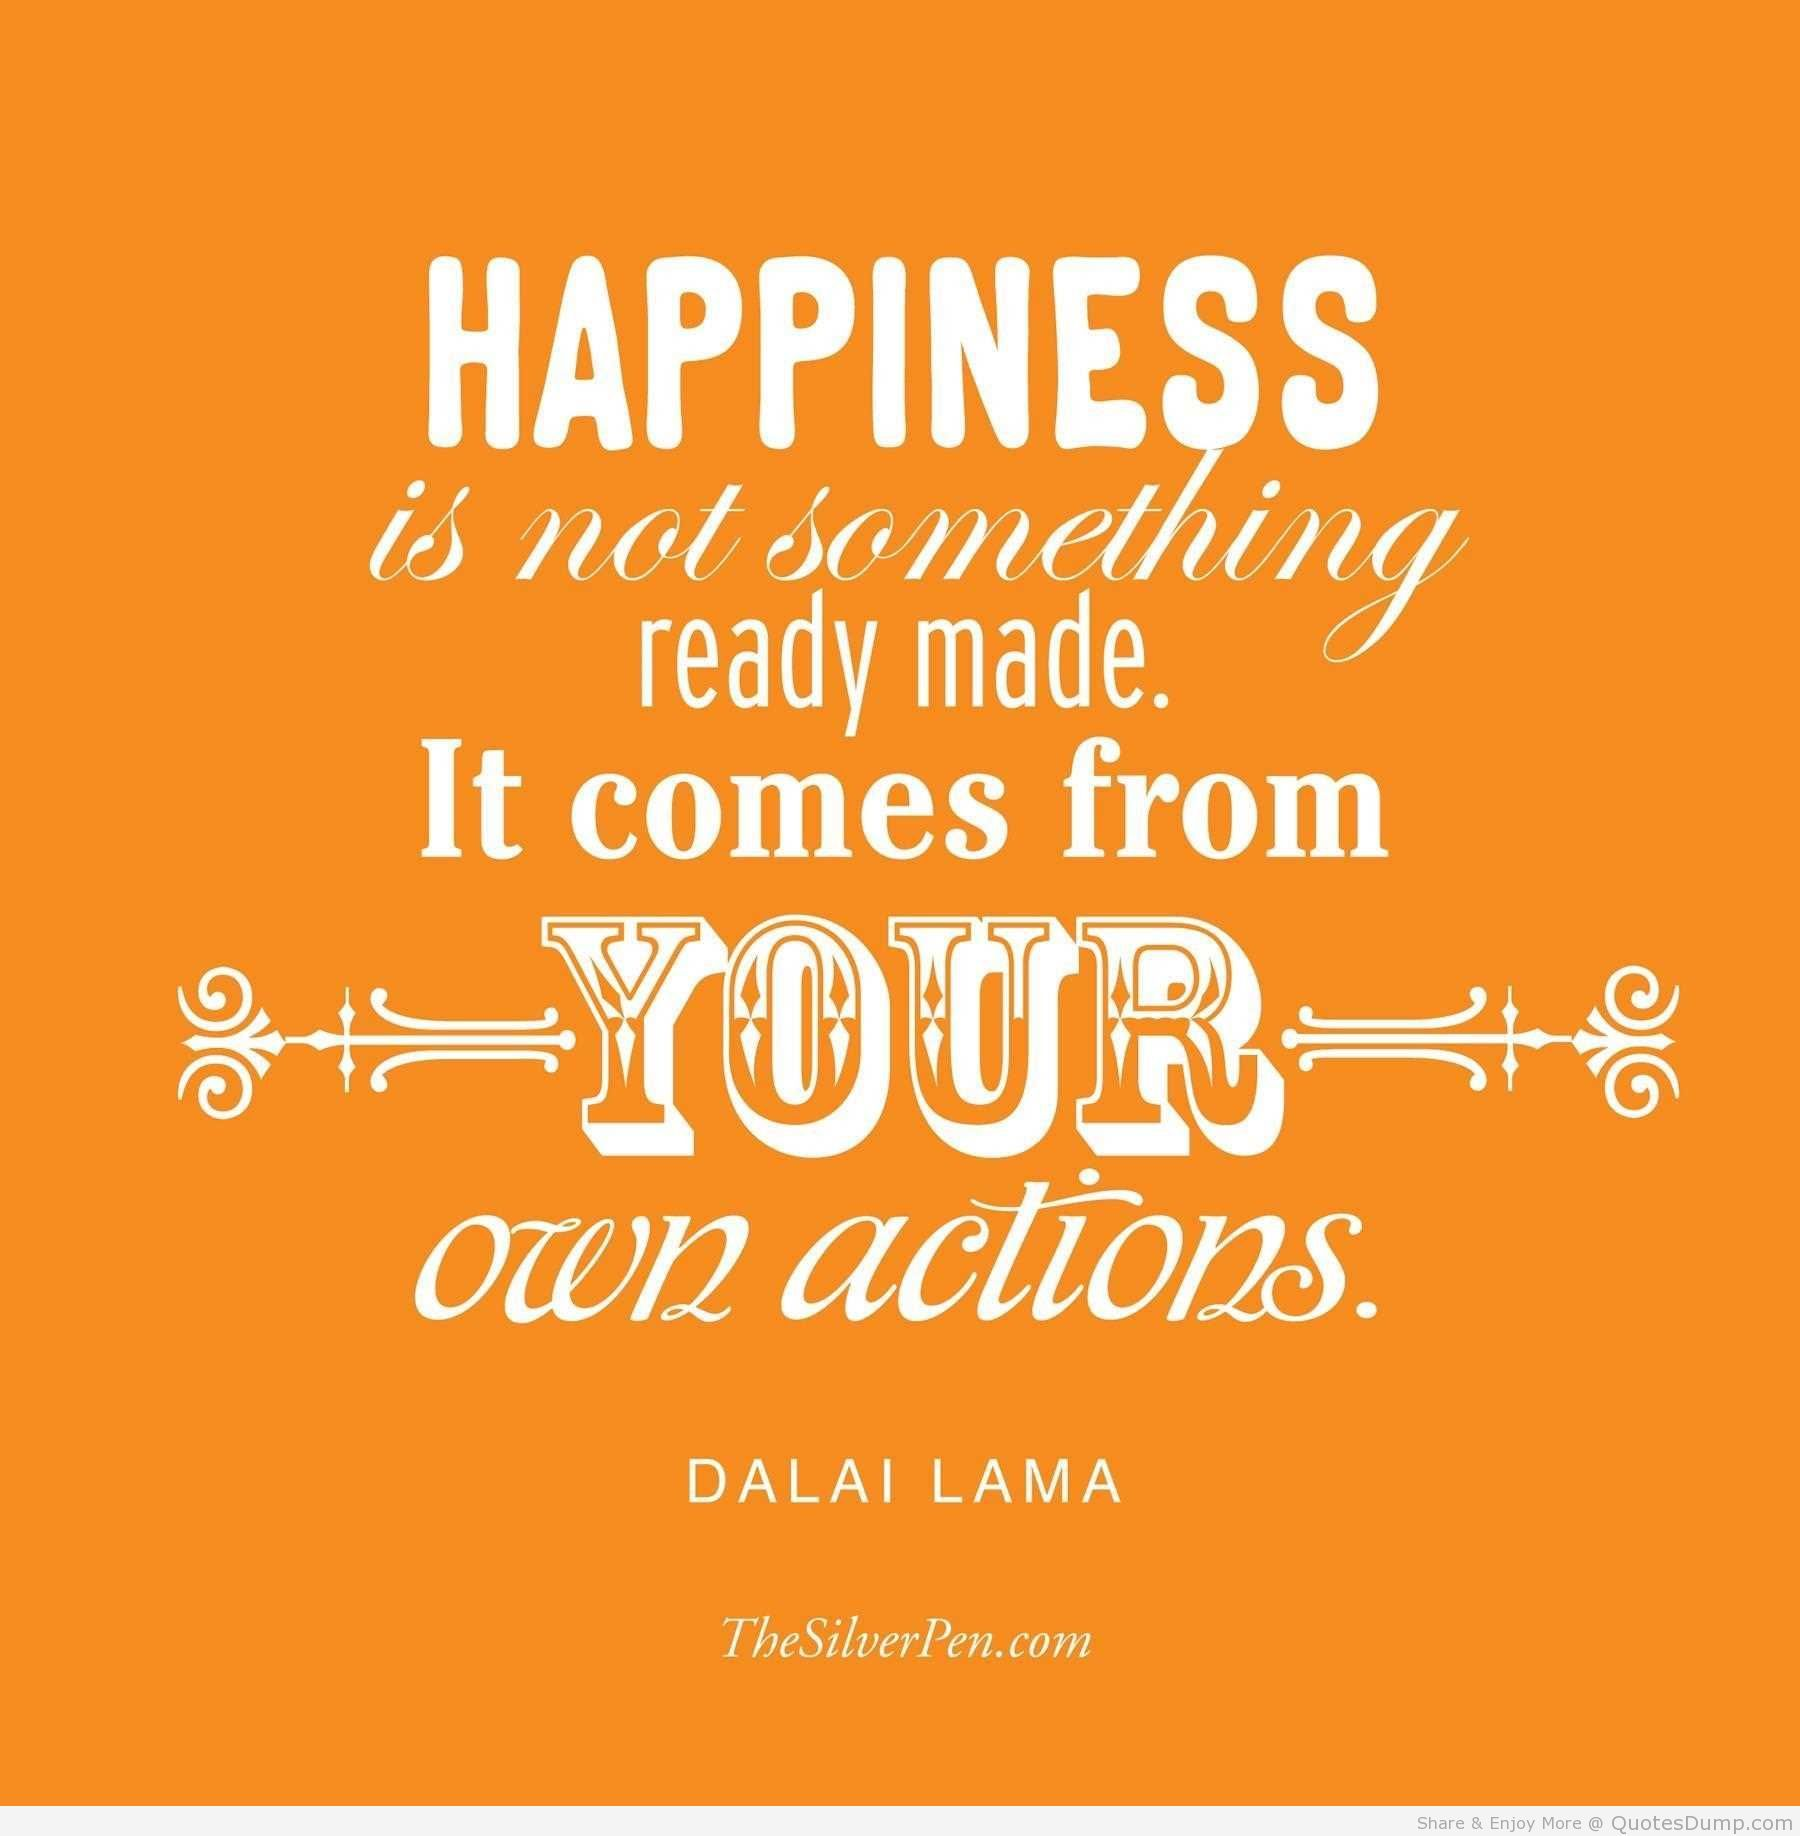 Happiness In Life Quotes: Quotes About Life And Happiness With Images